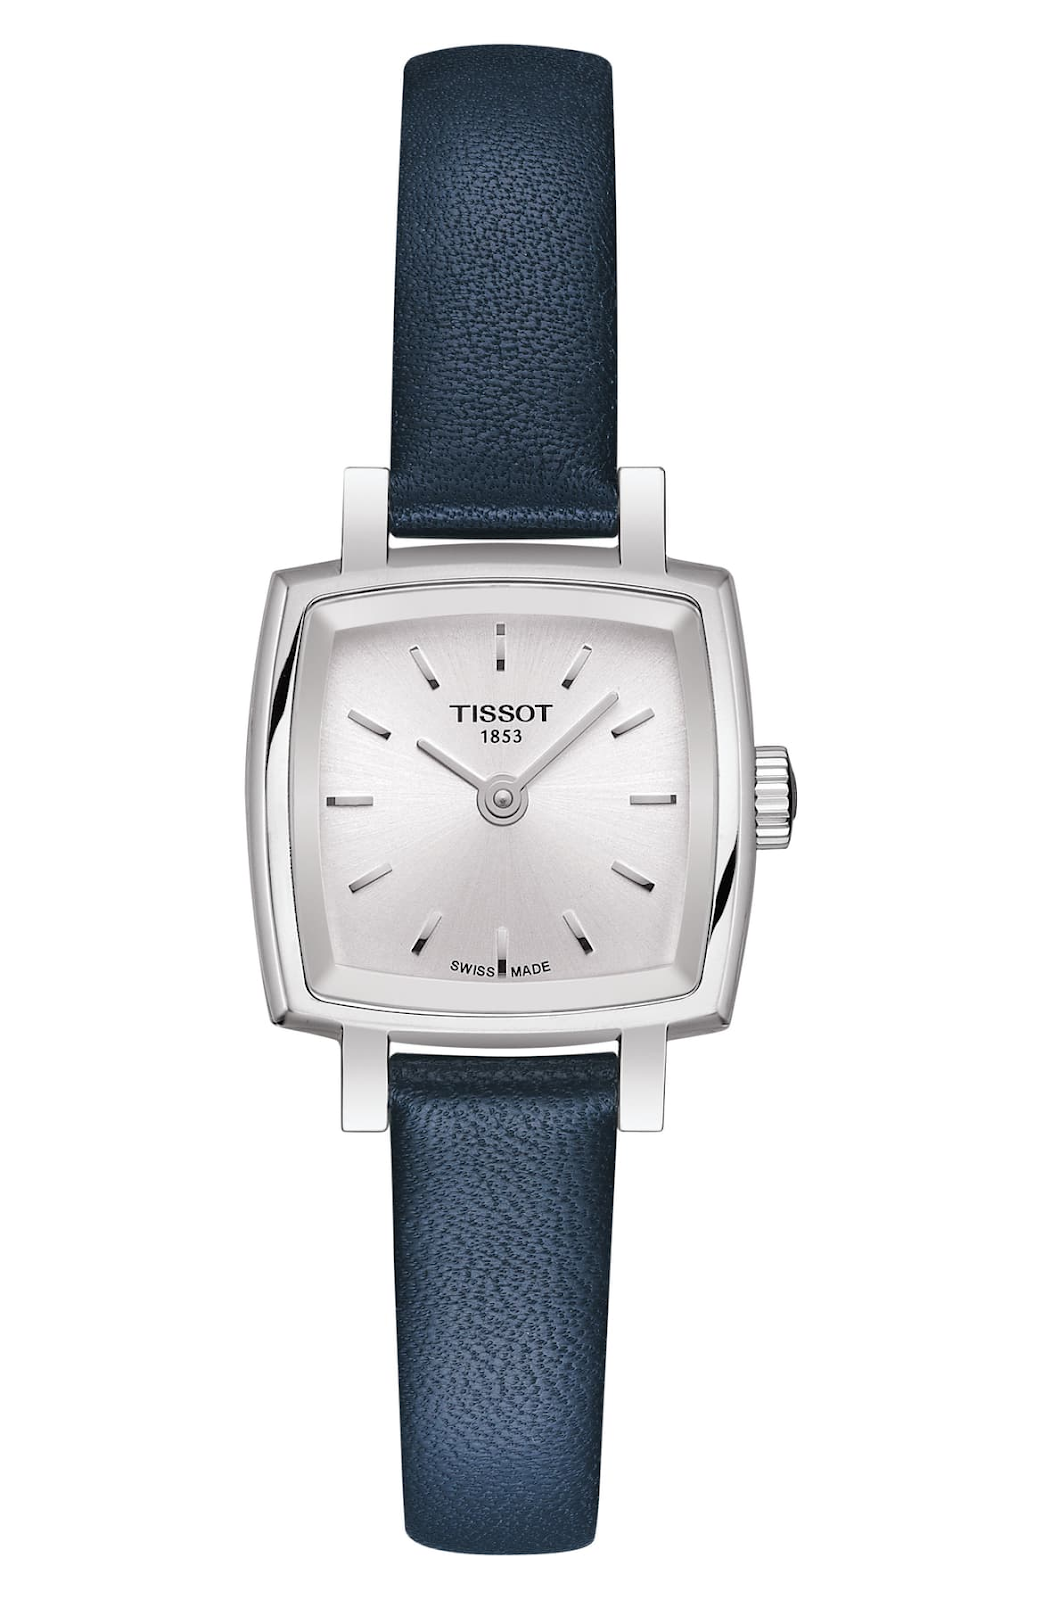 Silver faced watch with blue band